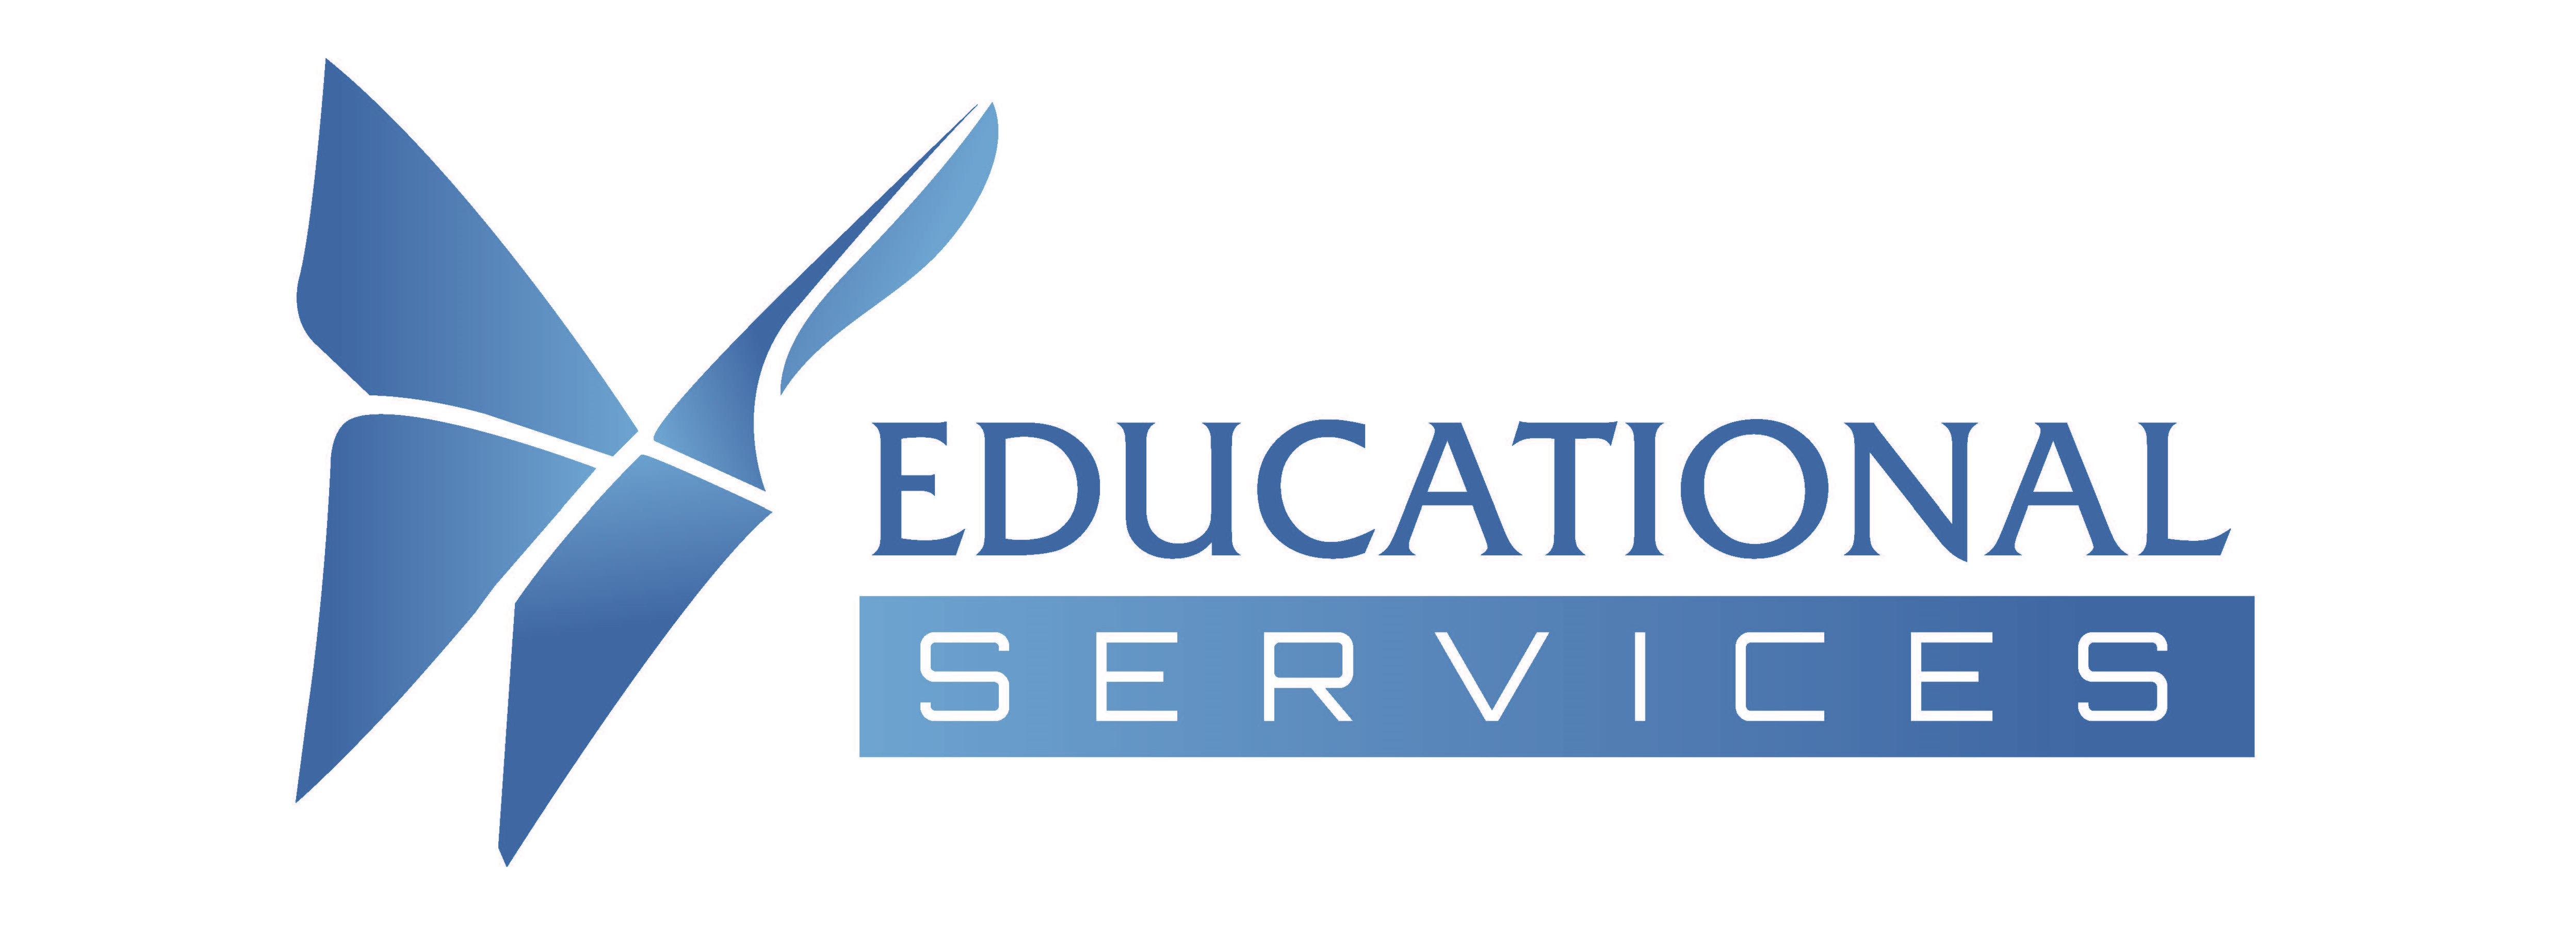 Educational Services Logo